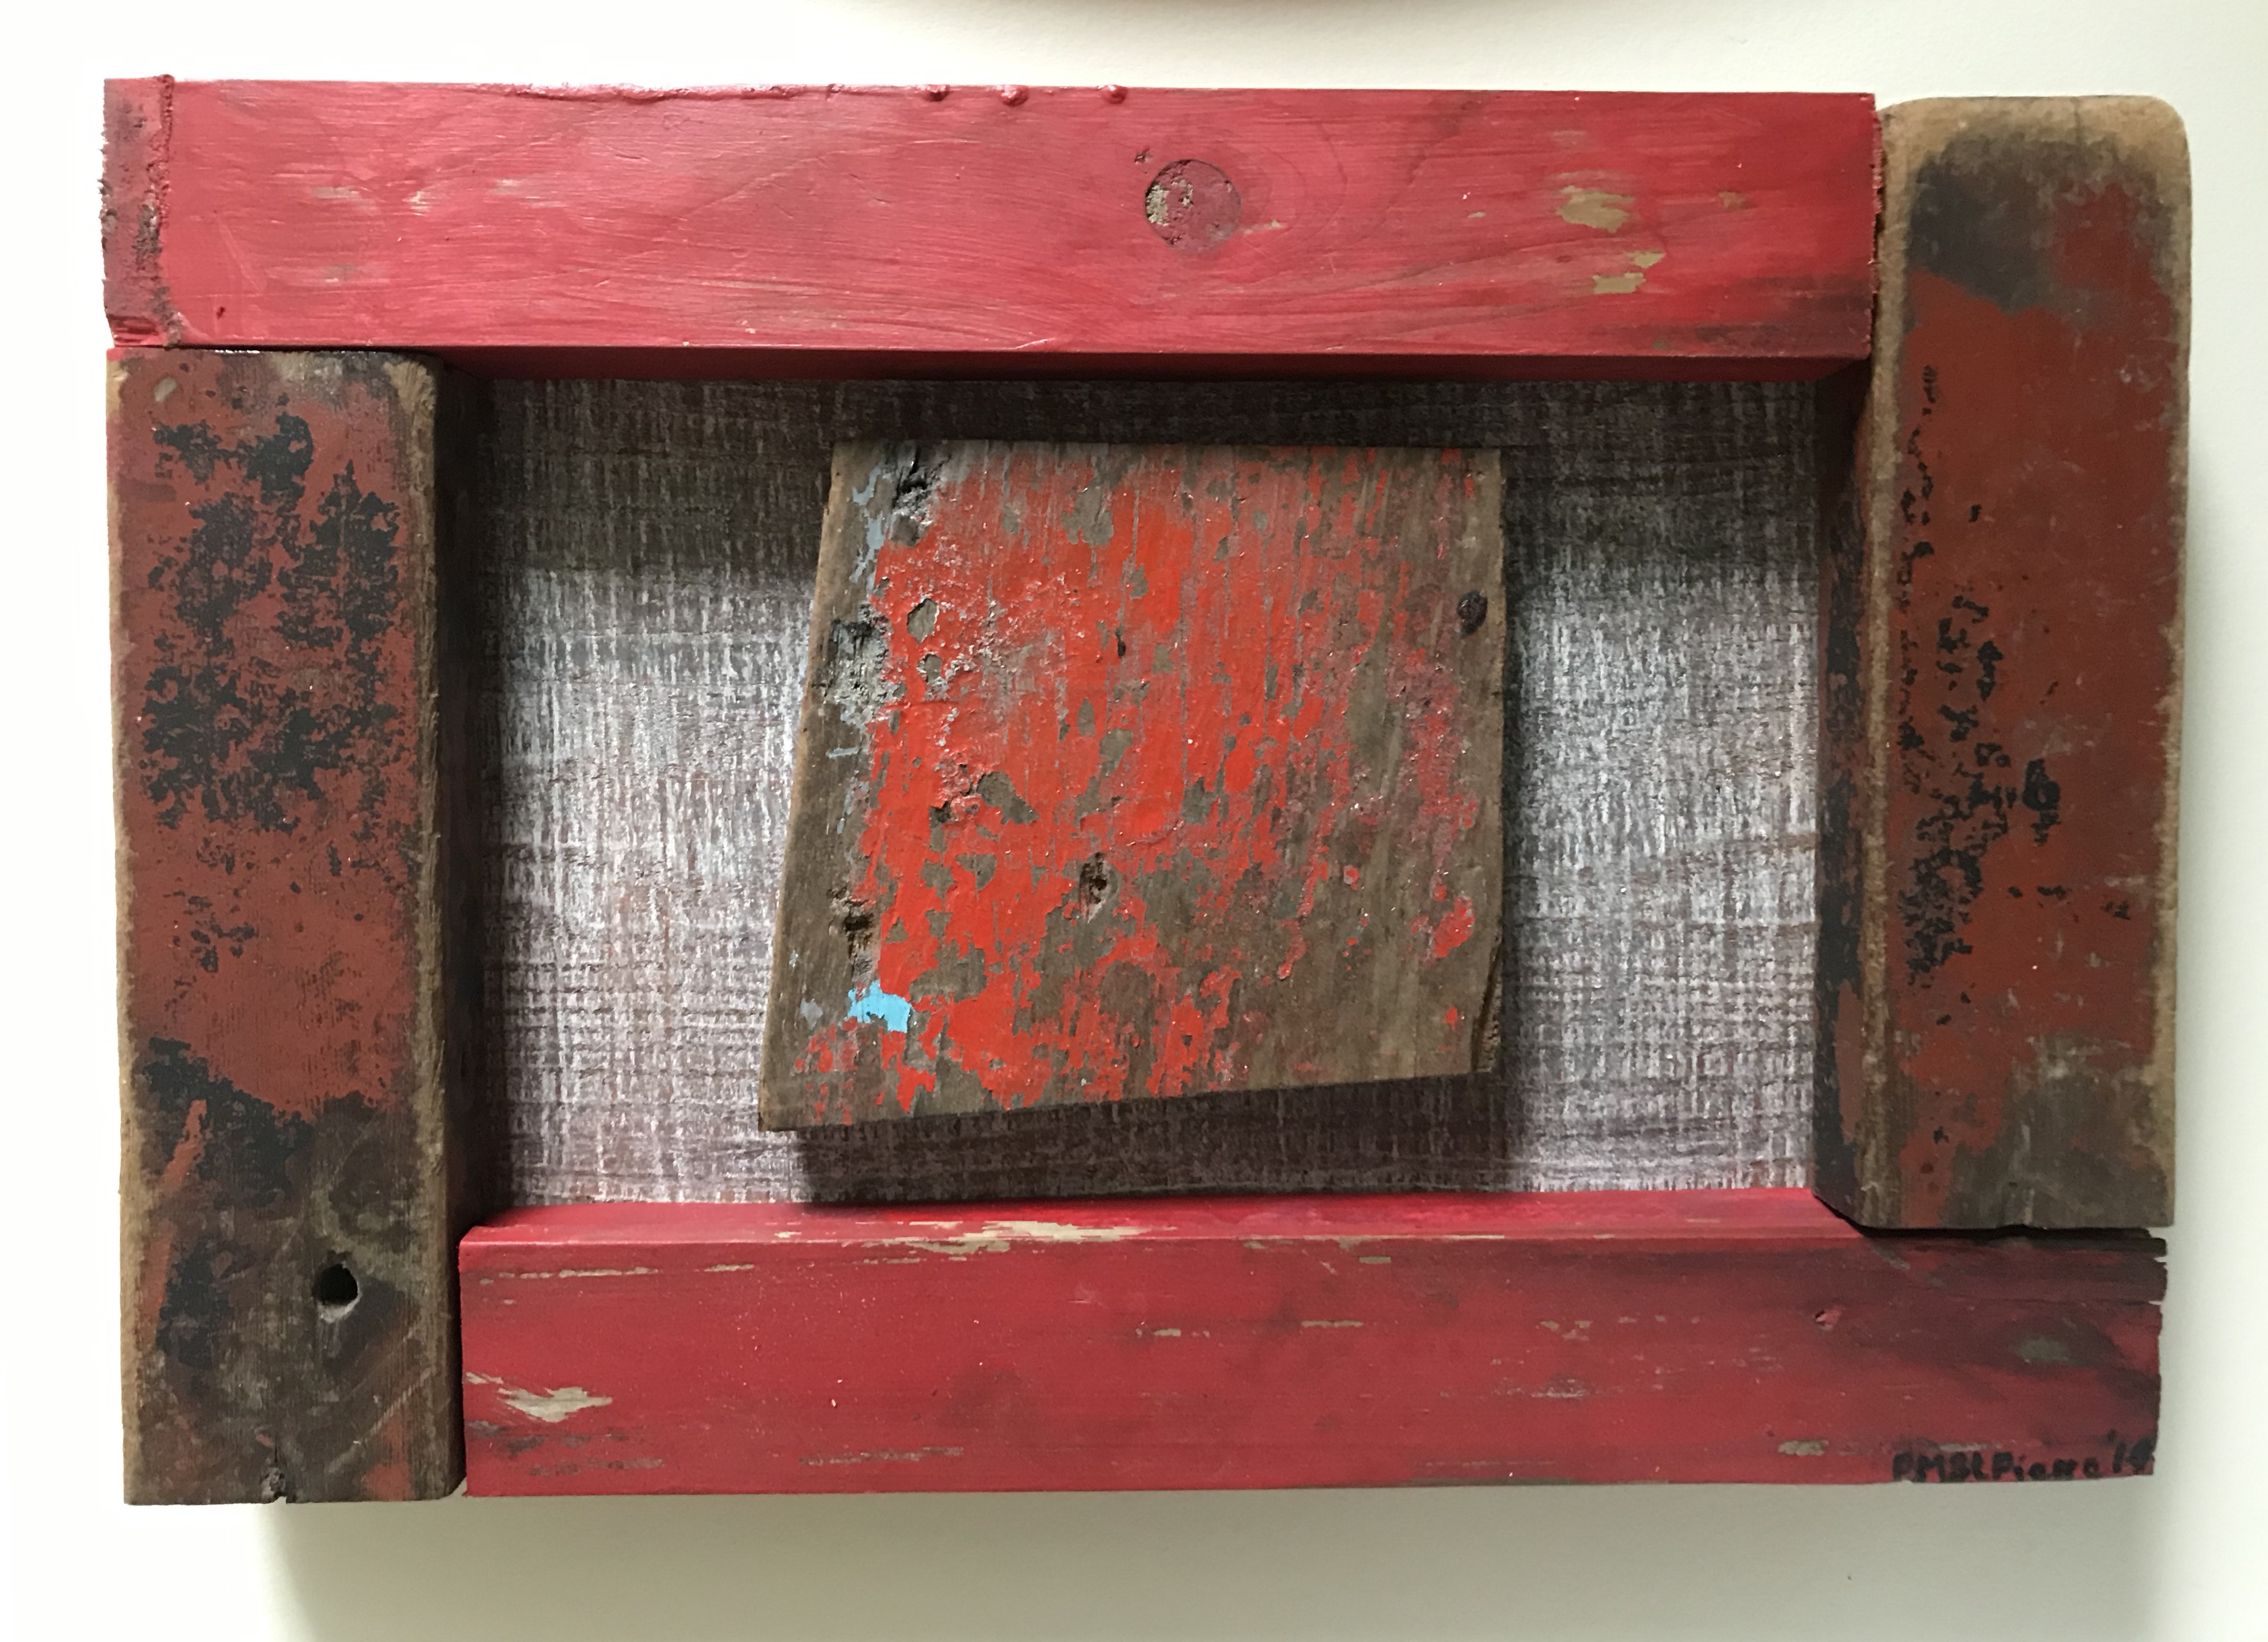 Fort Rouge artwork by Paul Matthew St Pierre - art listed for sale on Artplode